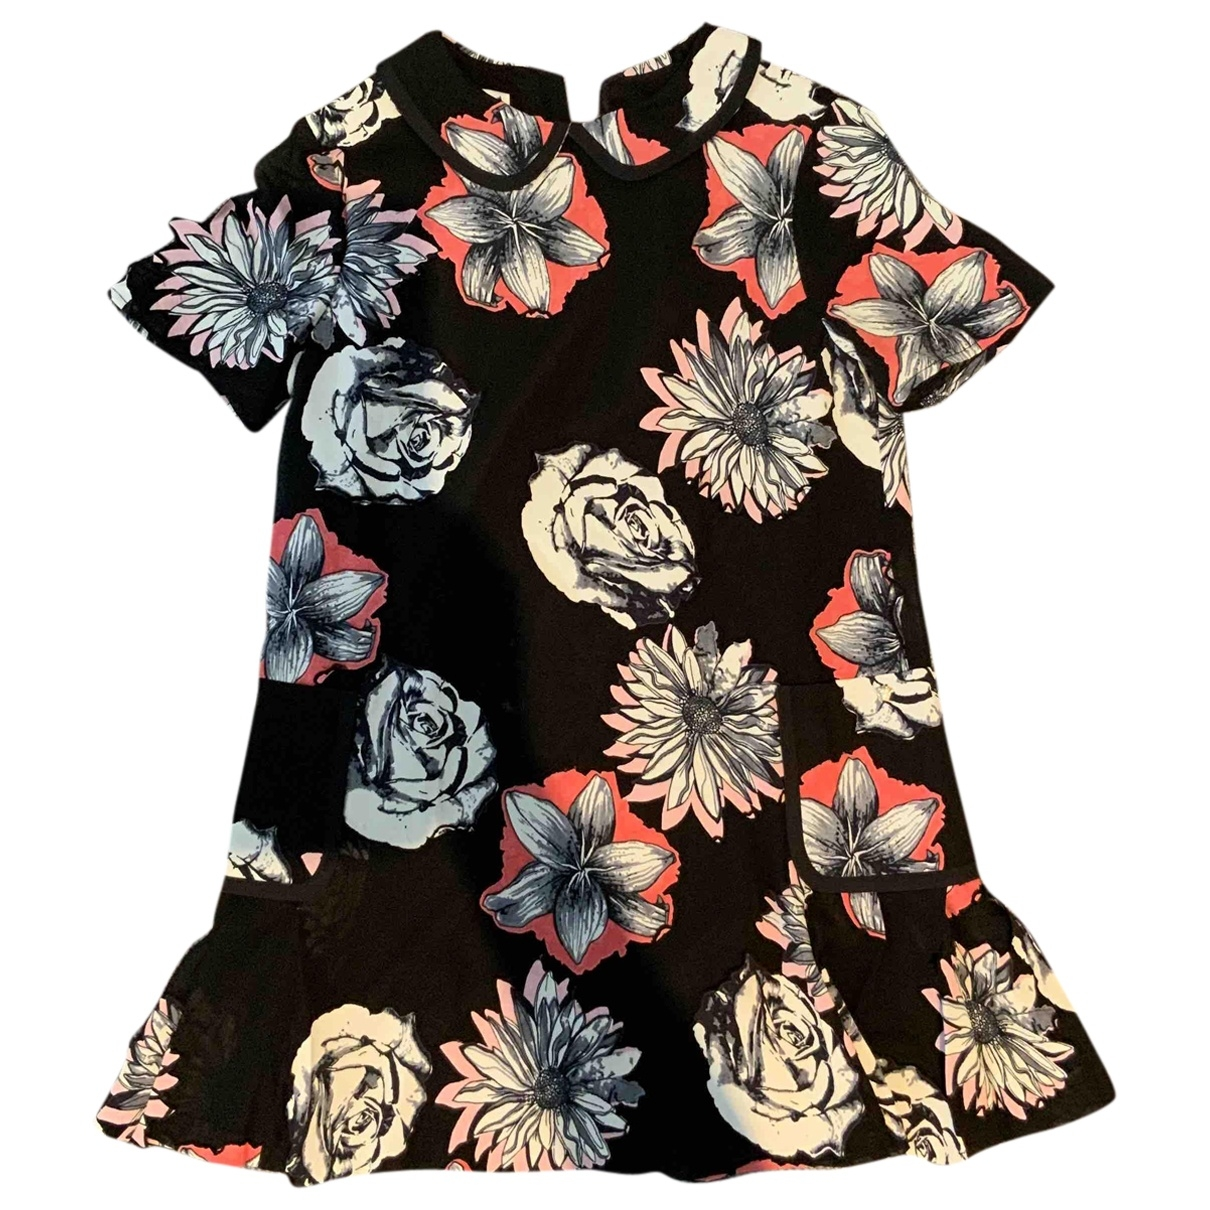 Versace \N Black dress for Kids 10 years - until 56 inches UK